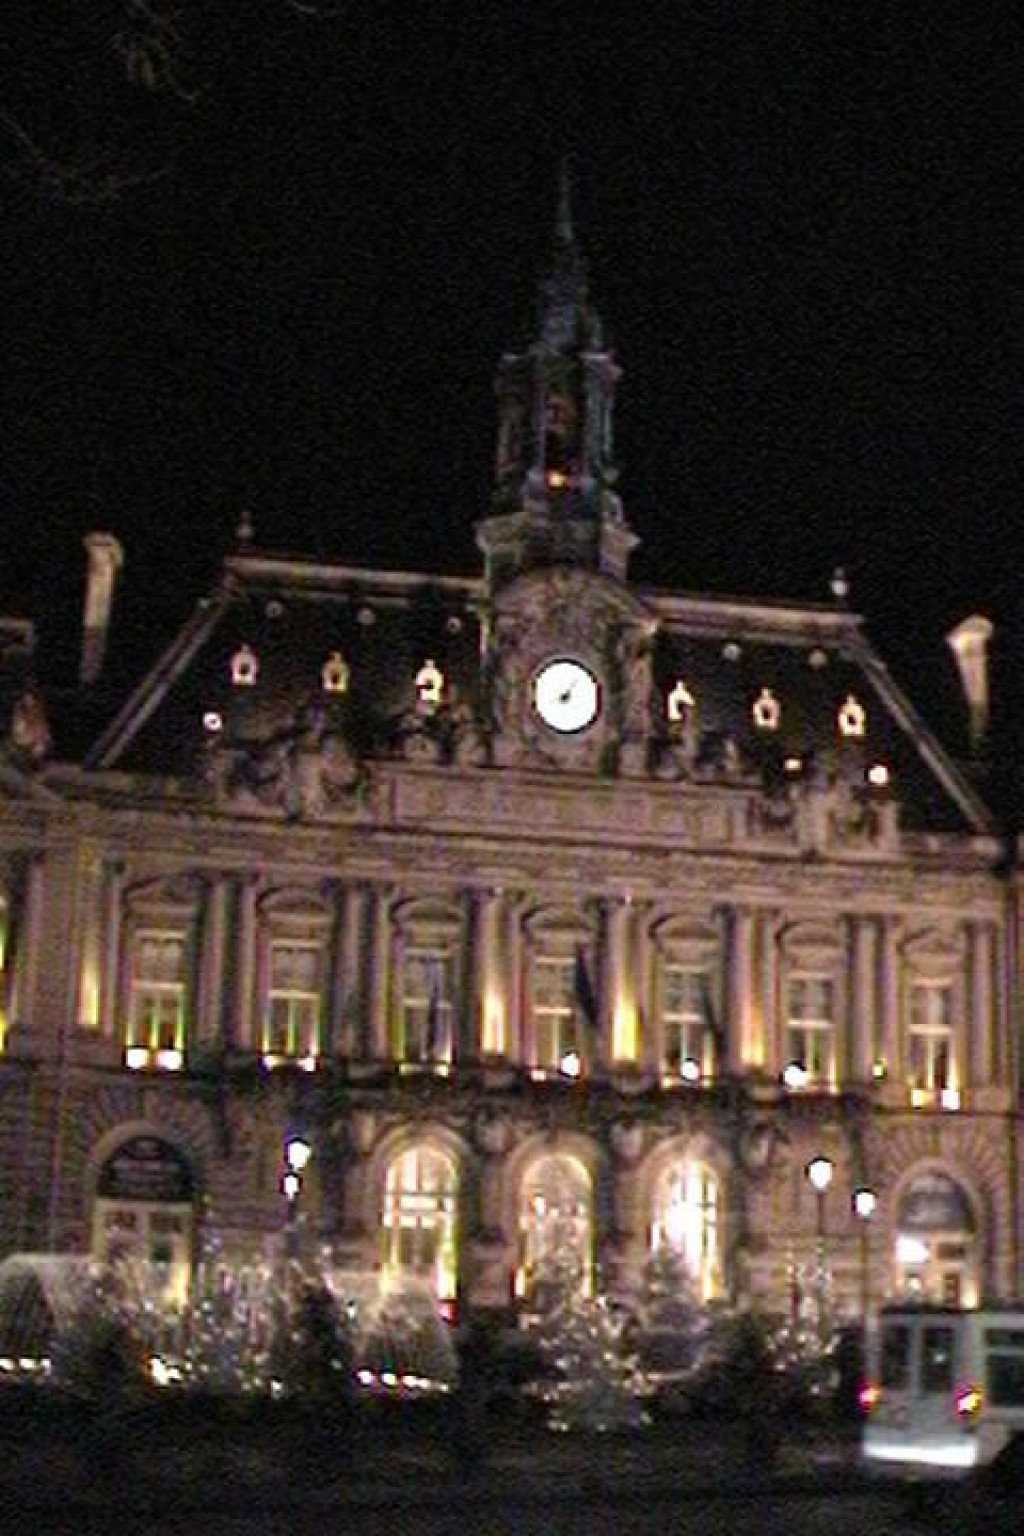 This is the Hotel de Ville.  Tours is a beautiful, clean, lively city.